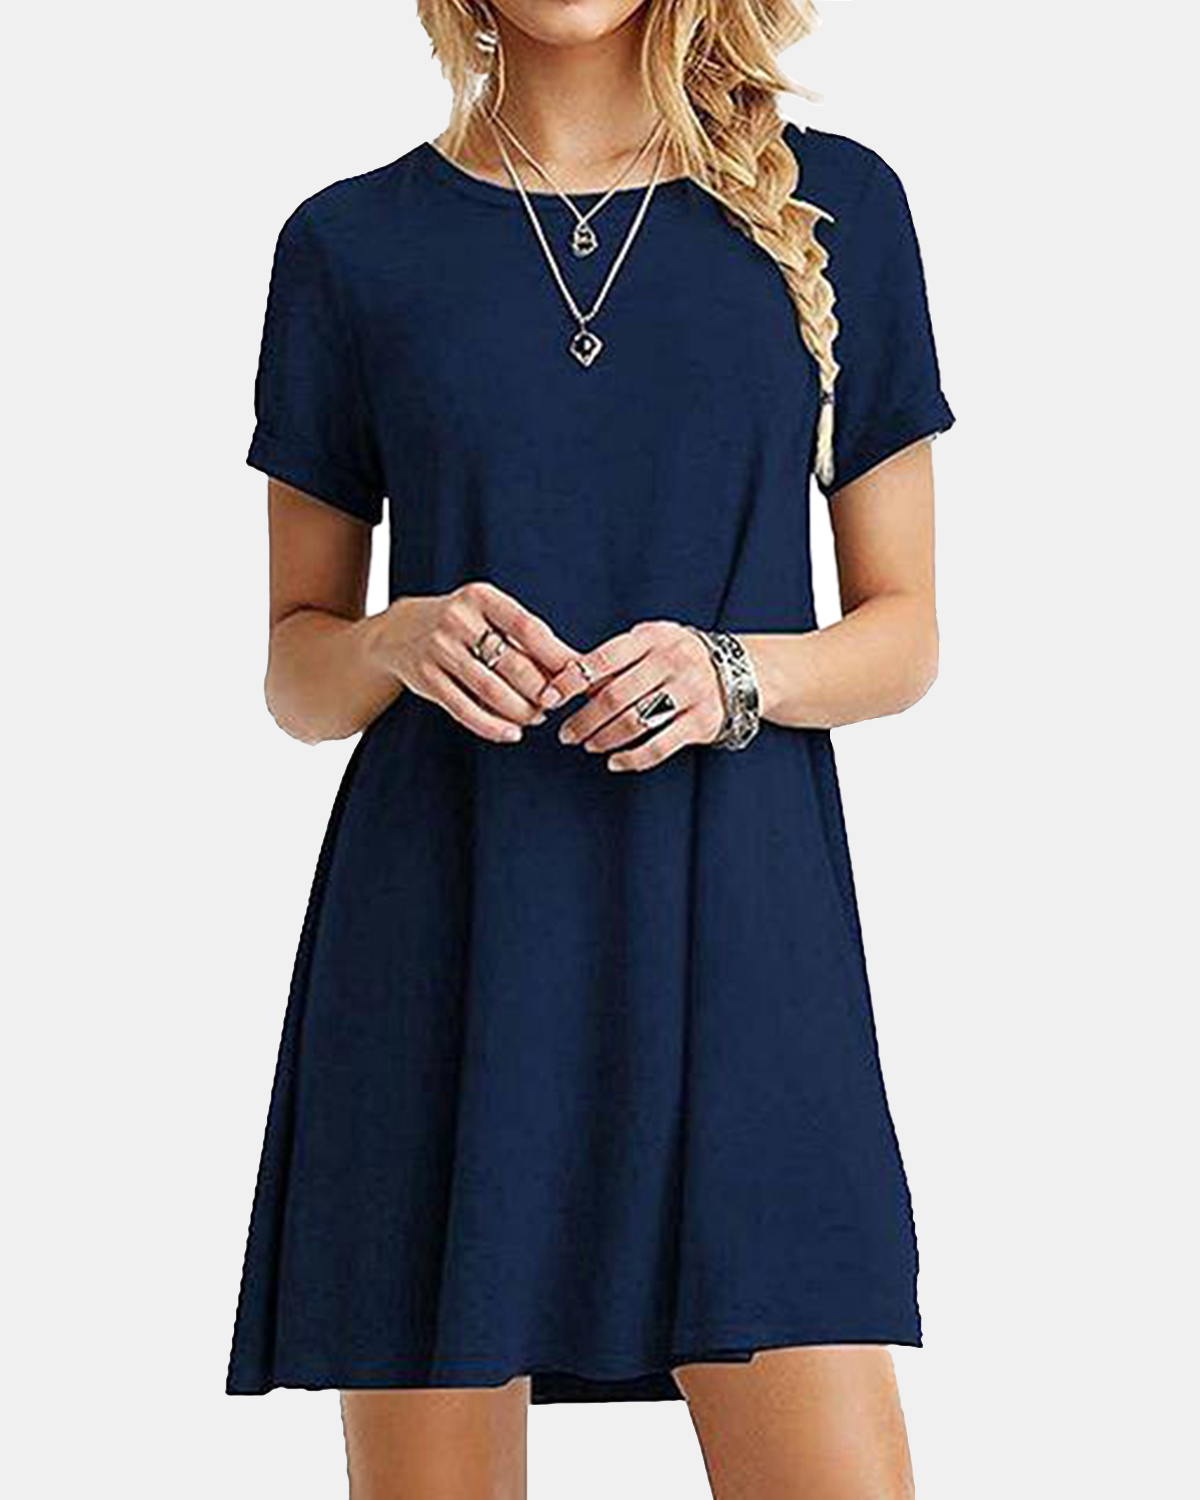 Short Sleeve Casual Loose O-neck Summer Mini Dress For Women